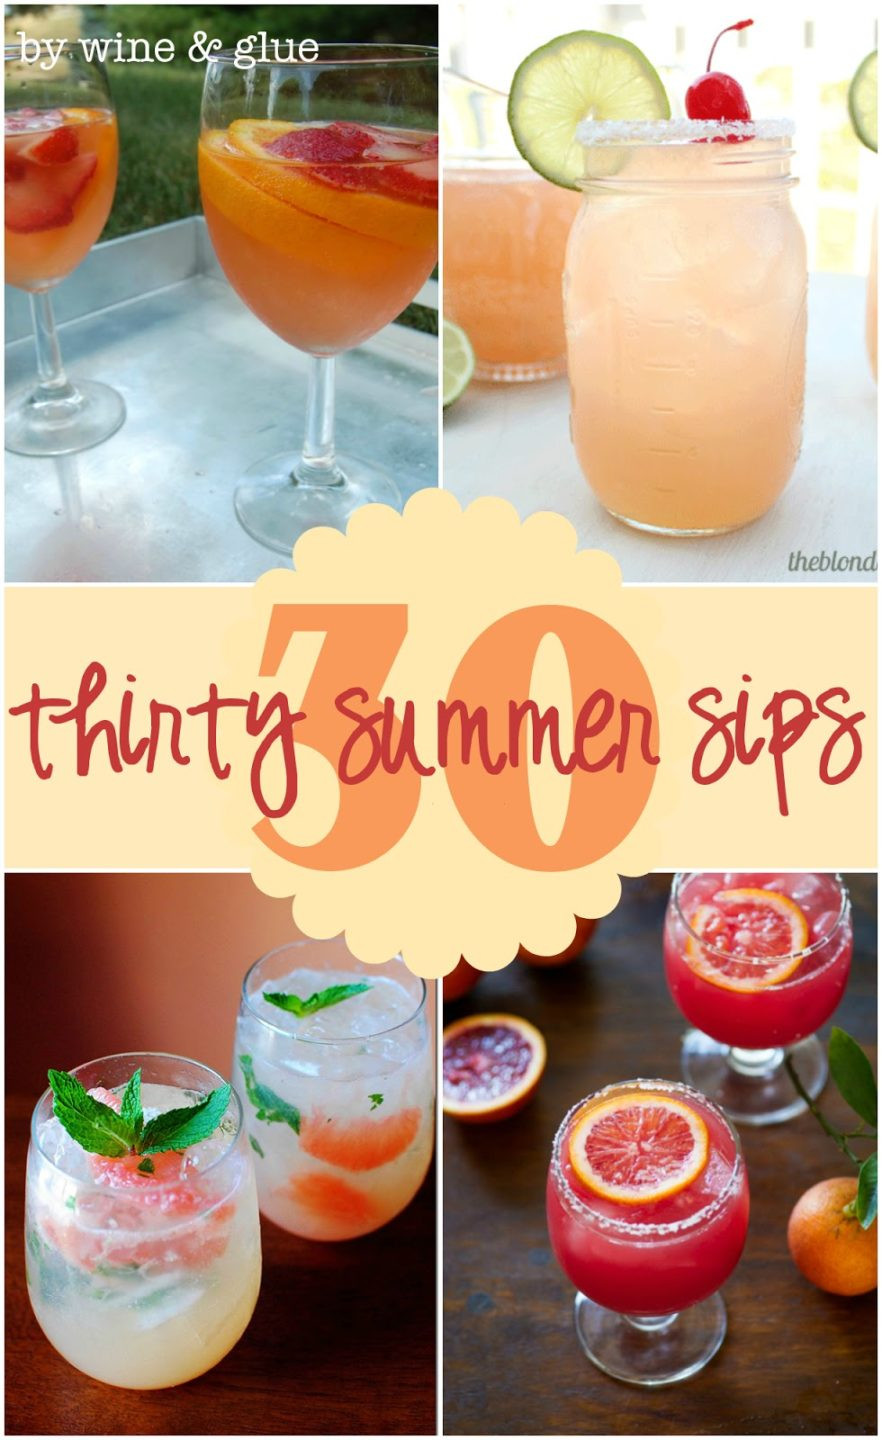 Champagne Drinks For Summer  30 Delicious Summer Cocktails Wine & Glue